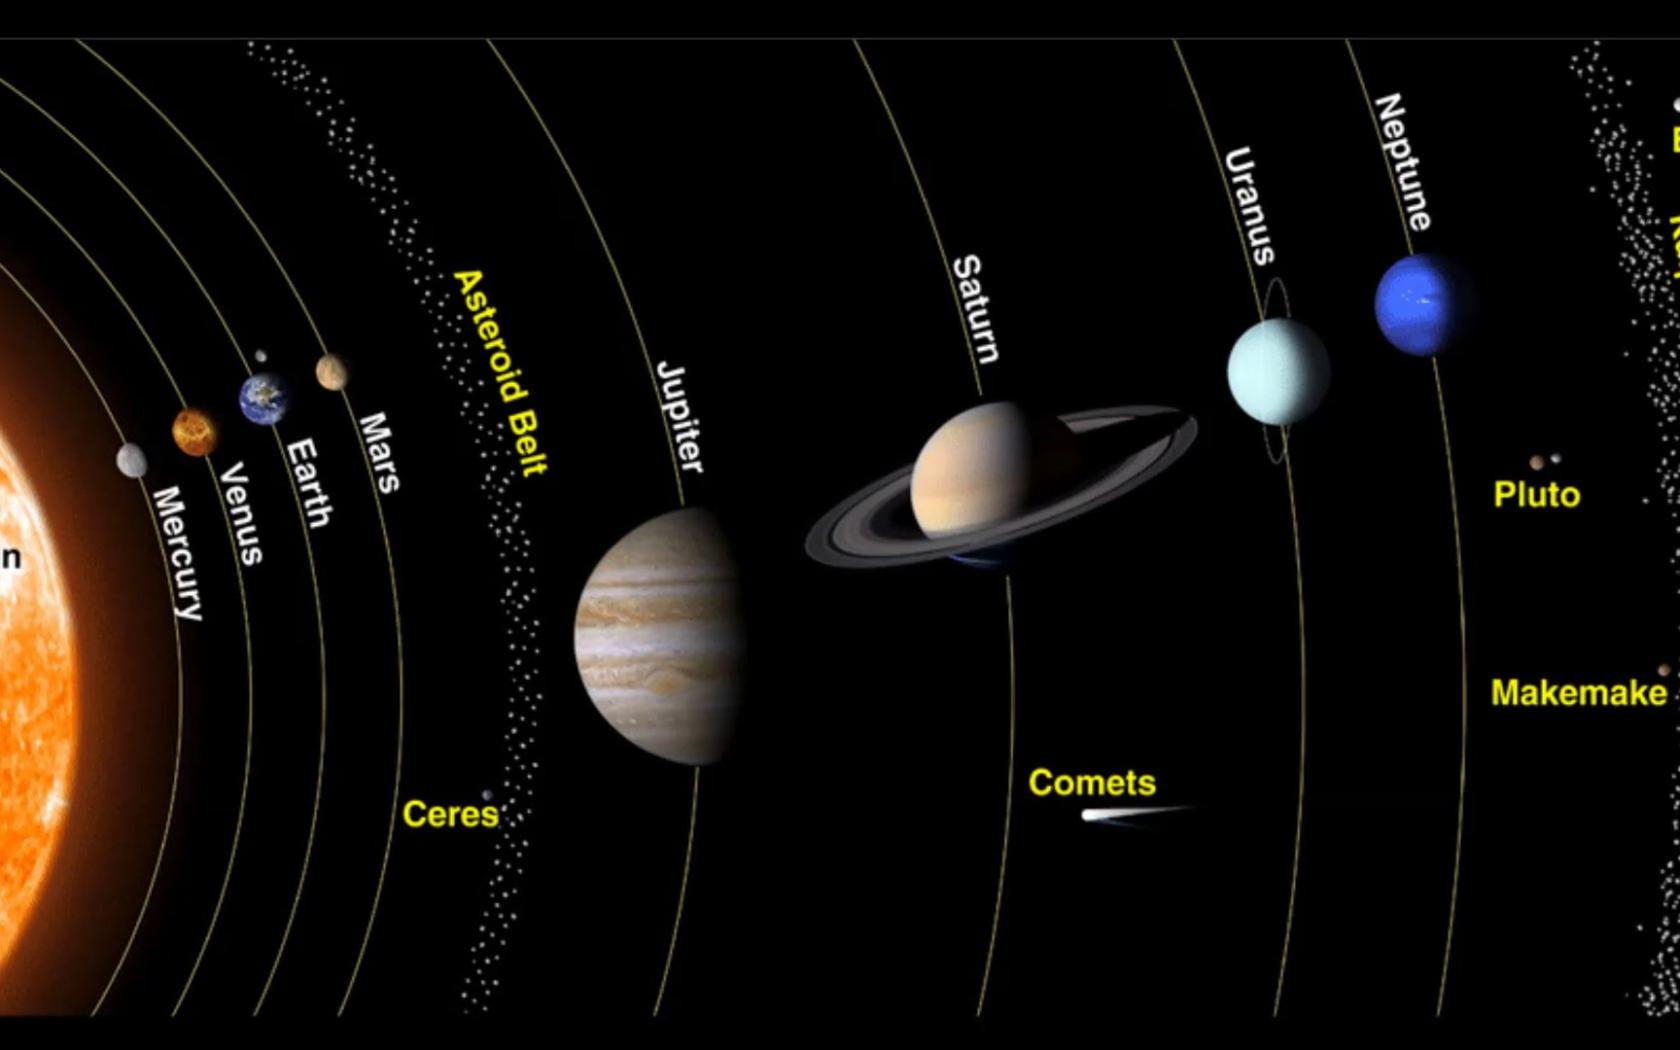 Pictures of the solar system in hd 1080p hd wallpapers - Solar system hd wallpapers 1080p ...